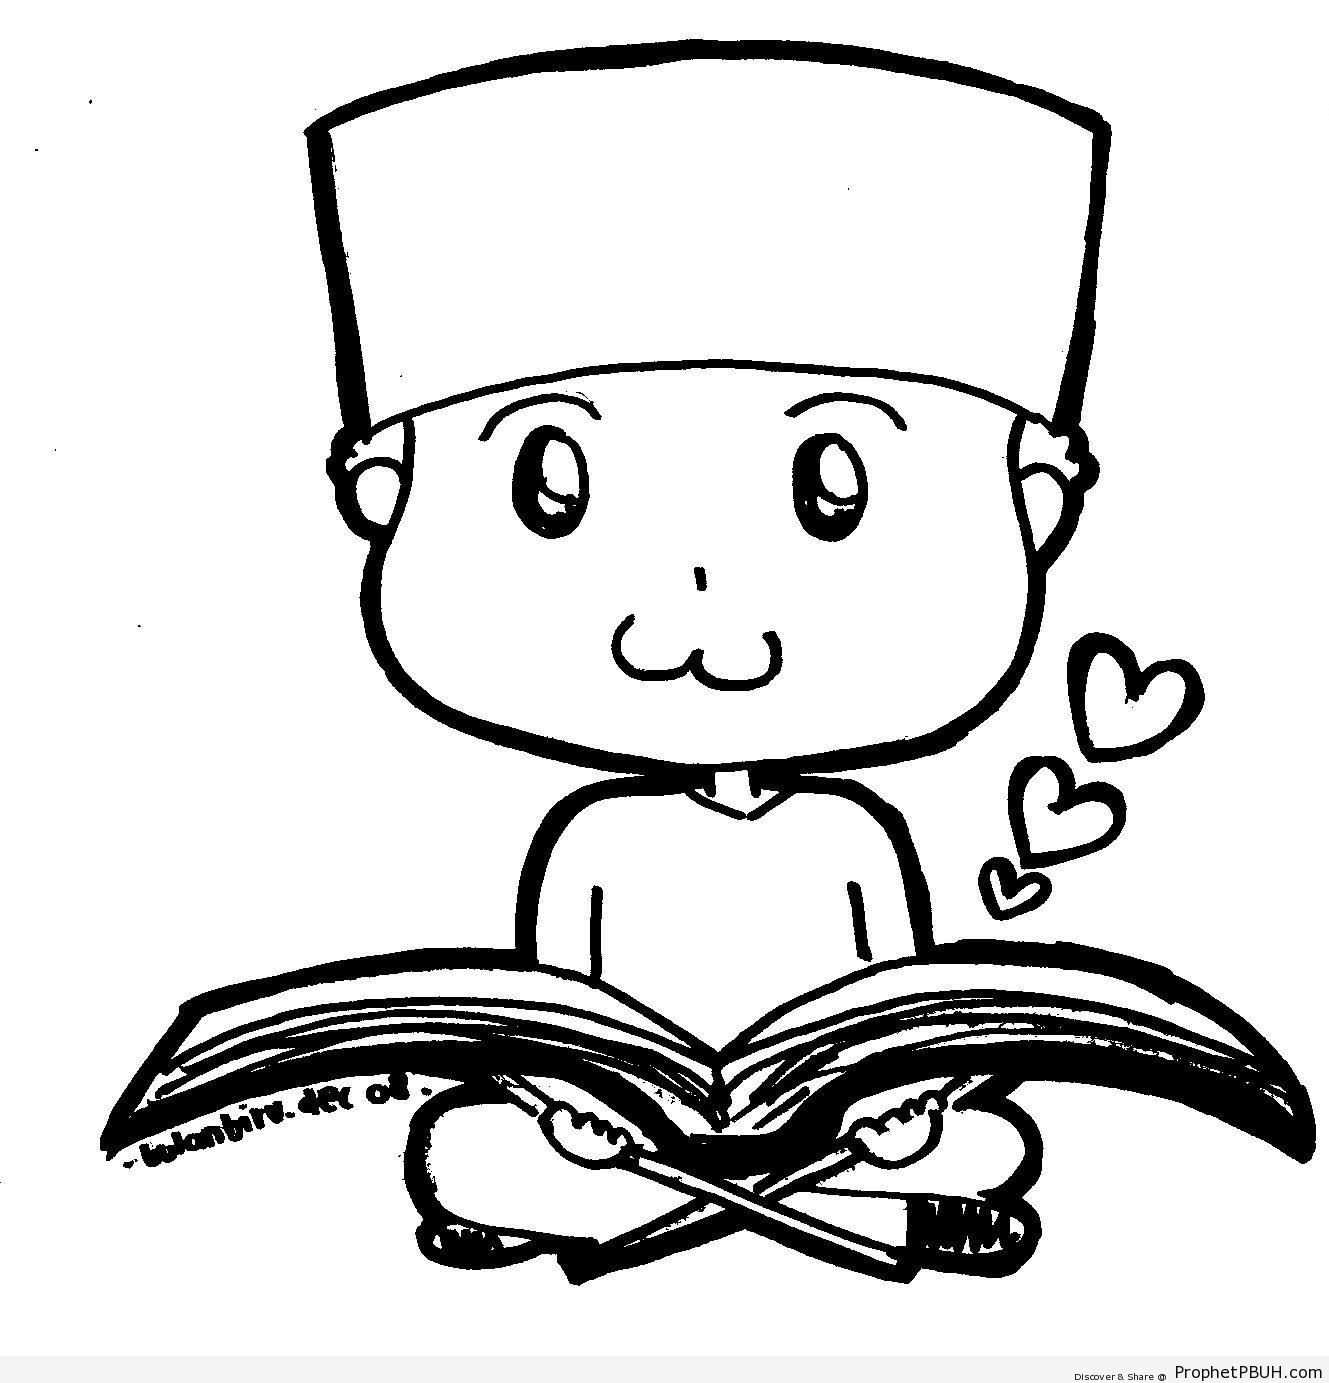 th?id=OIP.RWXOIHdQeWRa90fjClaqQQEgEs&pid=15.1 further muslim girl coloring pages 1 on muslim girl coloring pages in addition muslim girl coloring pages 2 on muslim girl coloring pages also muslim girl coloring pages 3 on muslim girl coloring pages furthermore muslim girl coloring pages 4 on muslim girl coloring pages